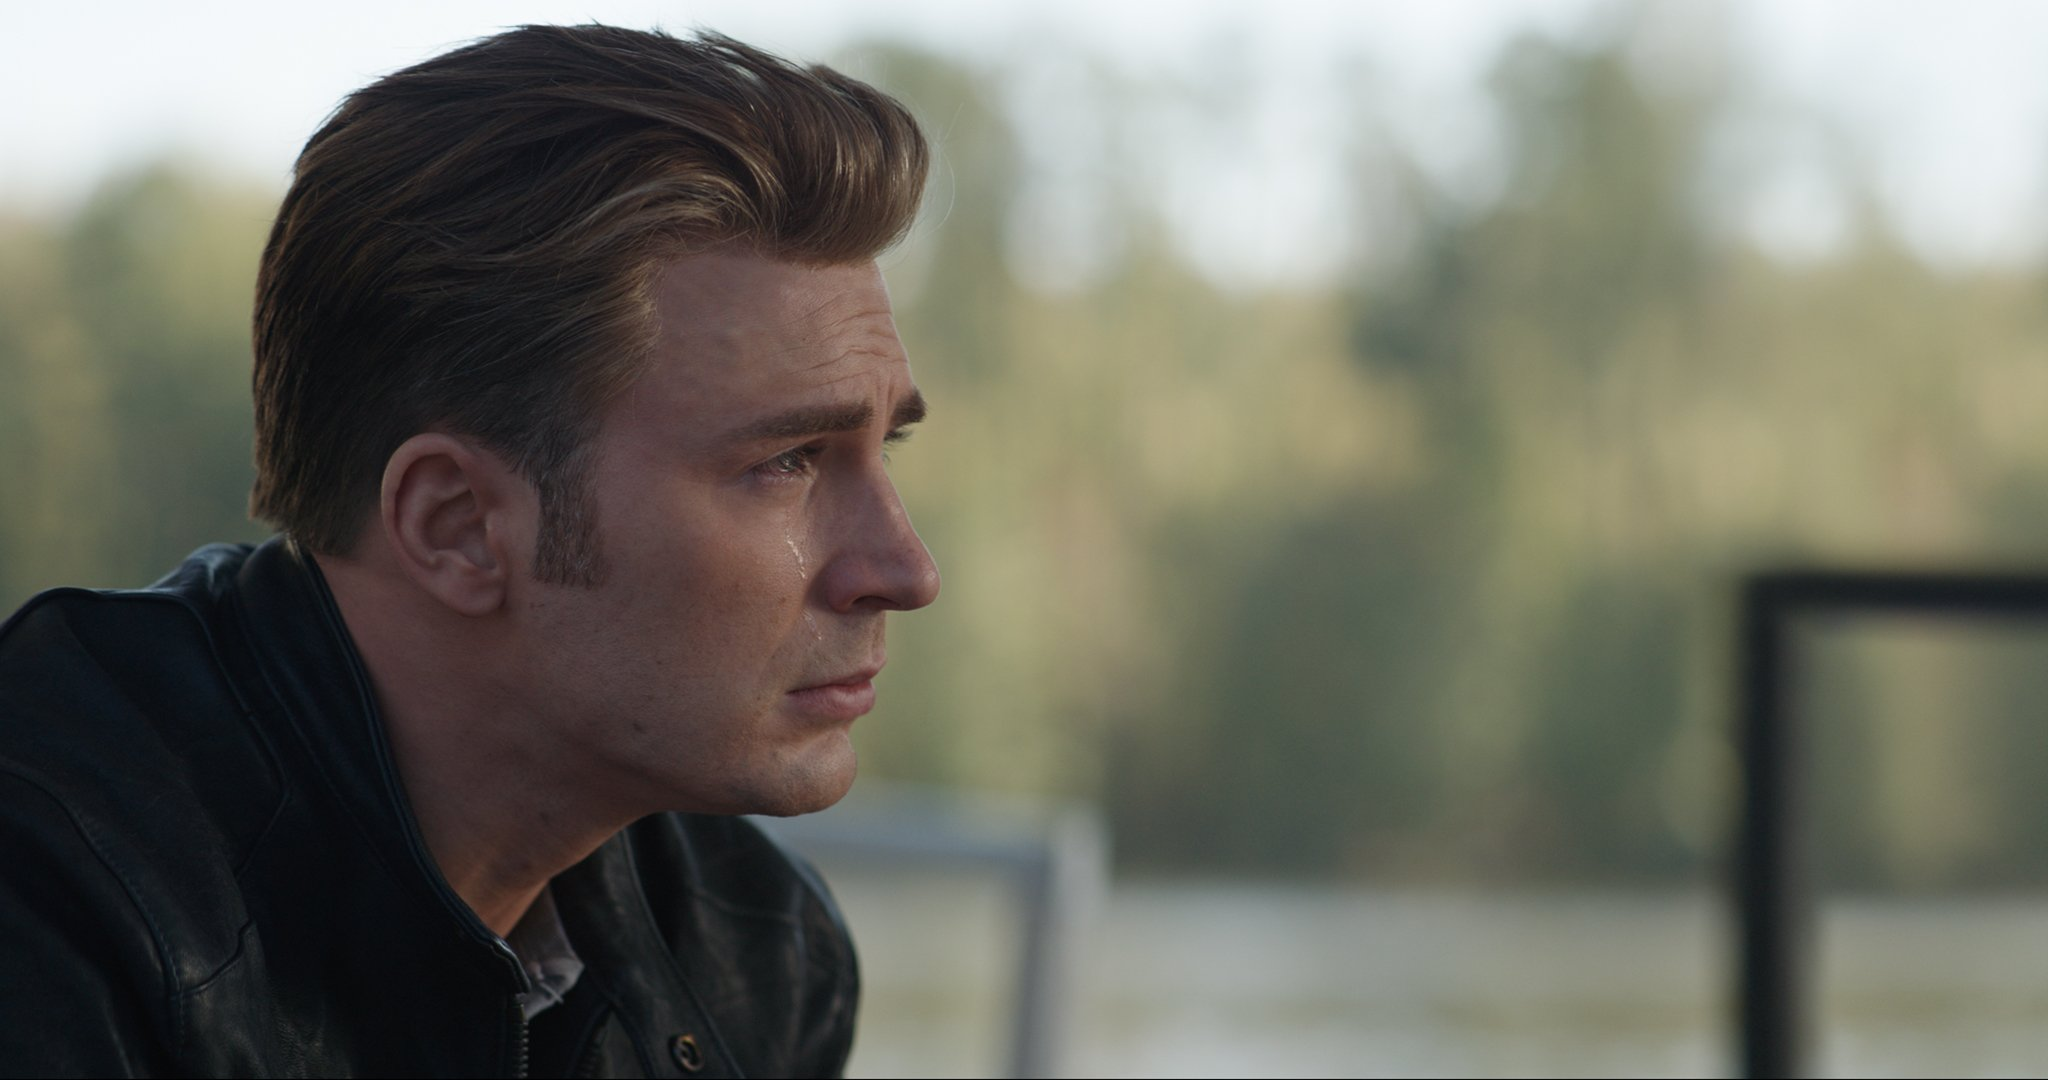 Photo du film Avengers: Endgame avec Captain America (Chris Evans)